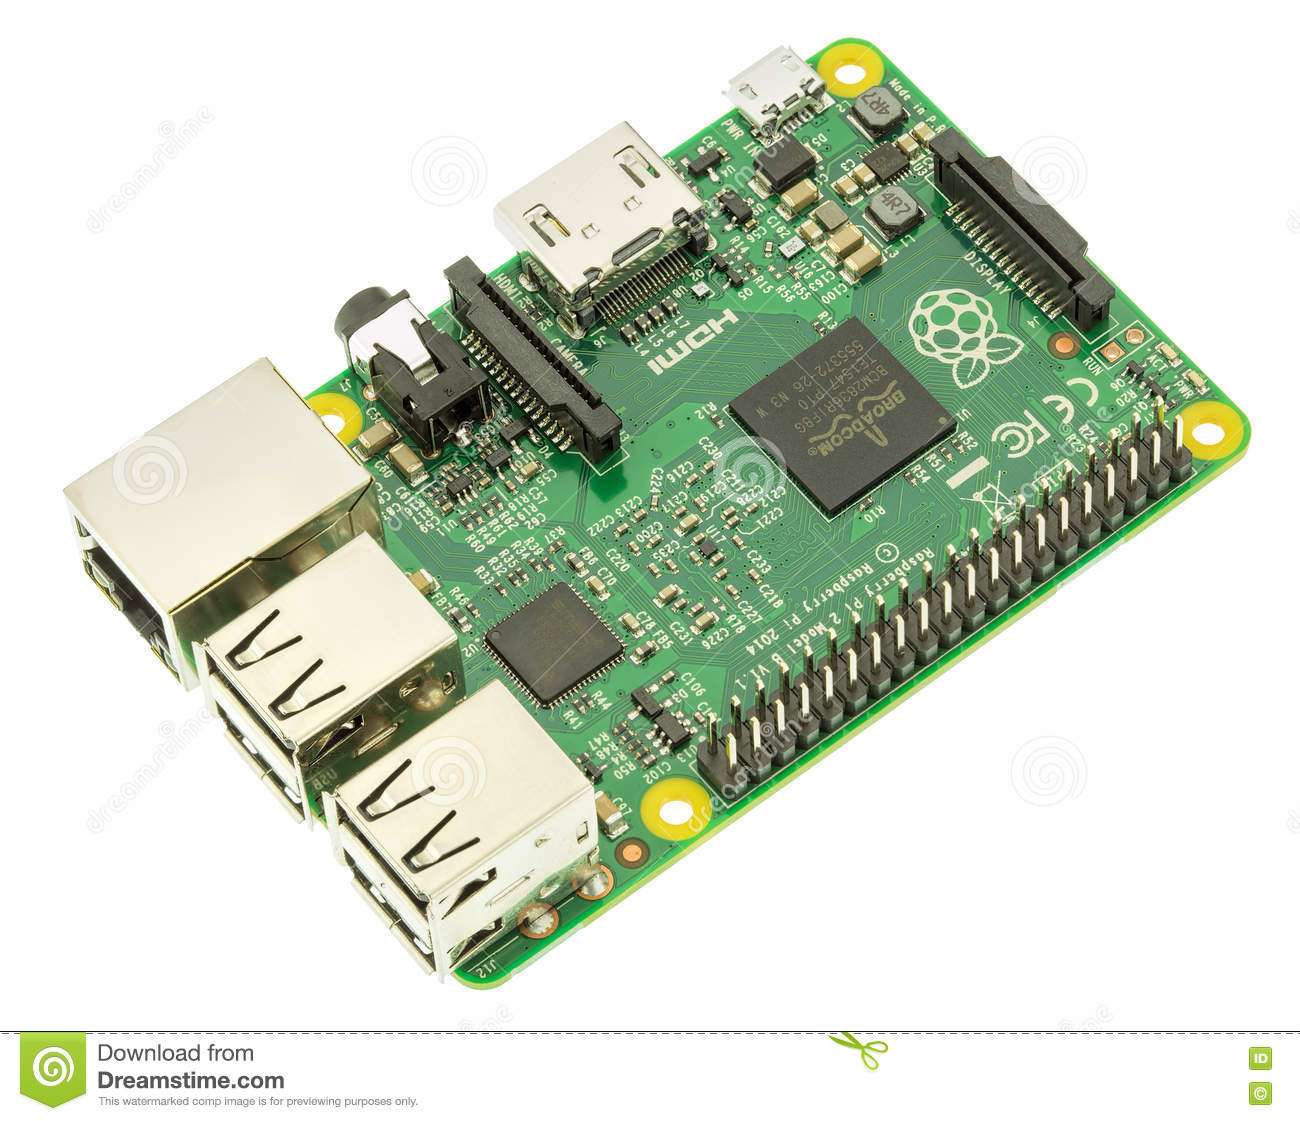 Raspberry pi 2 clipart png library stock Raspberry Pi 2 Model B Board Isolated On White Editorial Stock ... png library stock